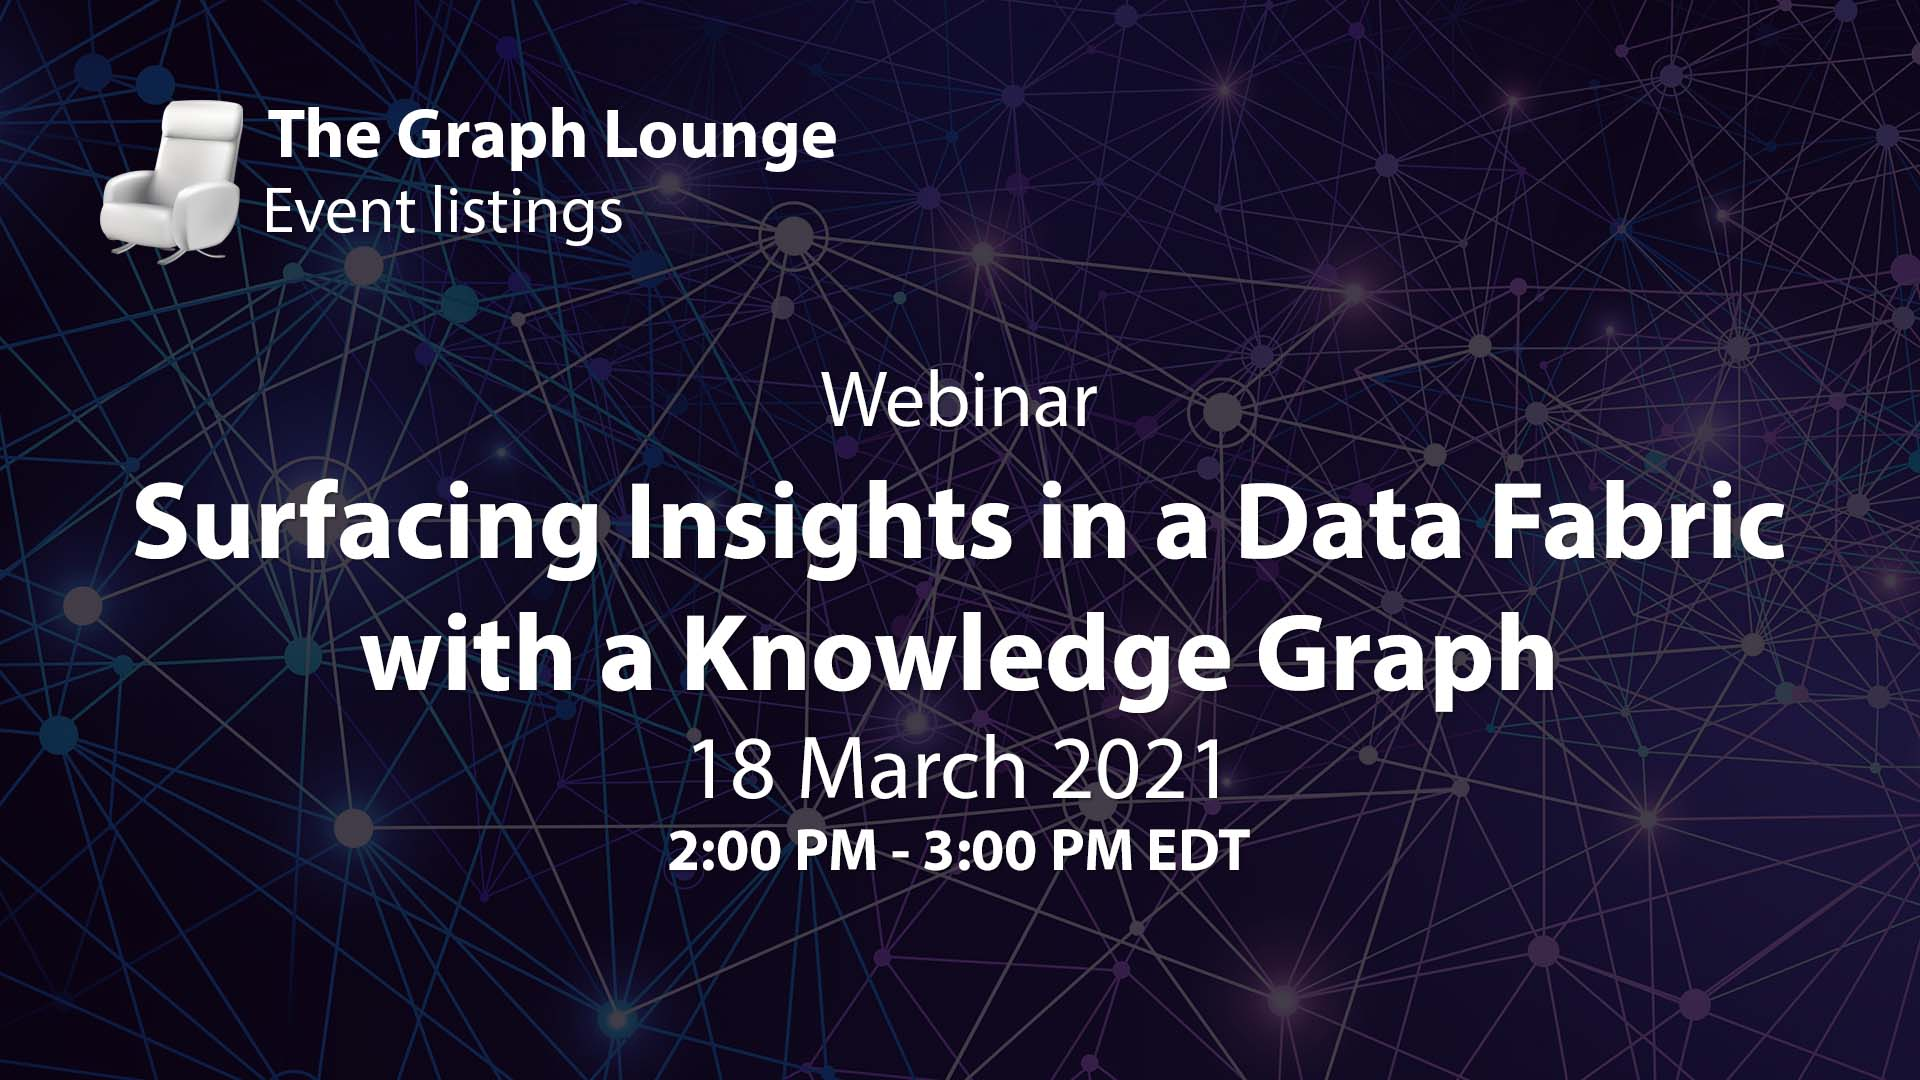 Surfacing Insights in a Data Fabric with a Knowledge Graph